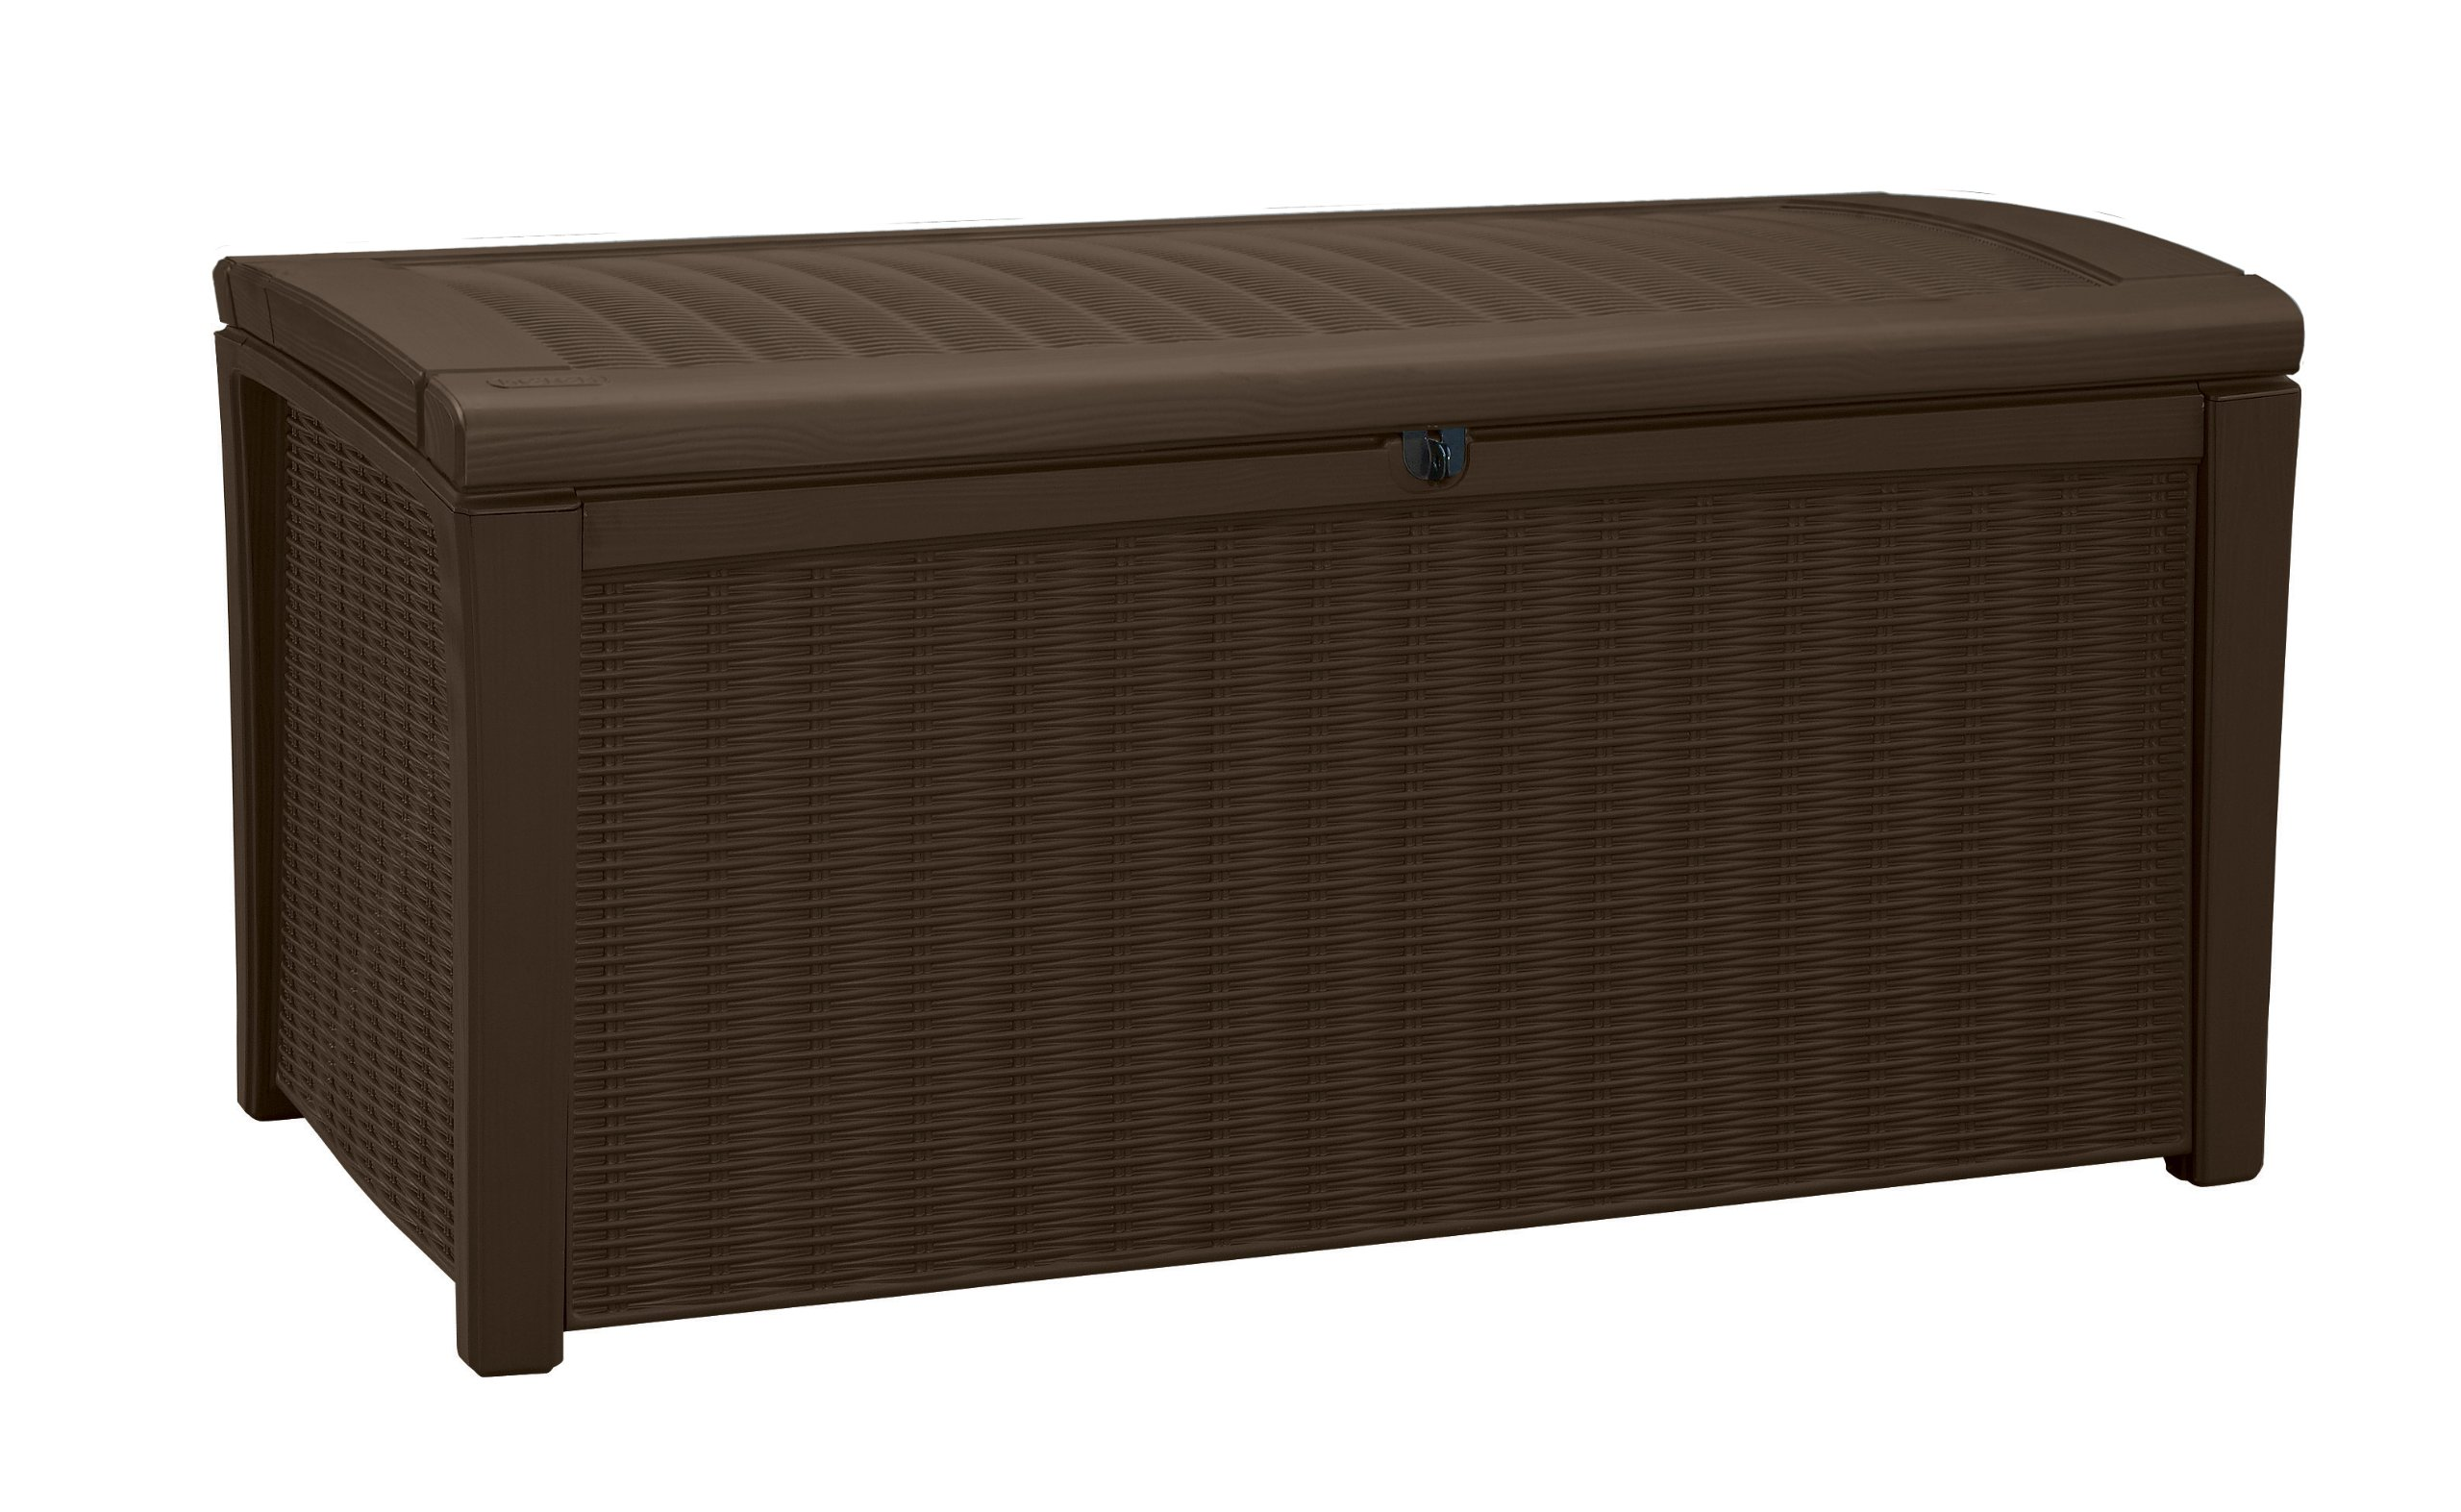 Keter Borneo 110 Gal. Plastic Outdoor Patio Storage Container Deck Box & Garden Bench, Brown